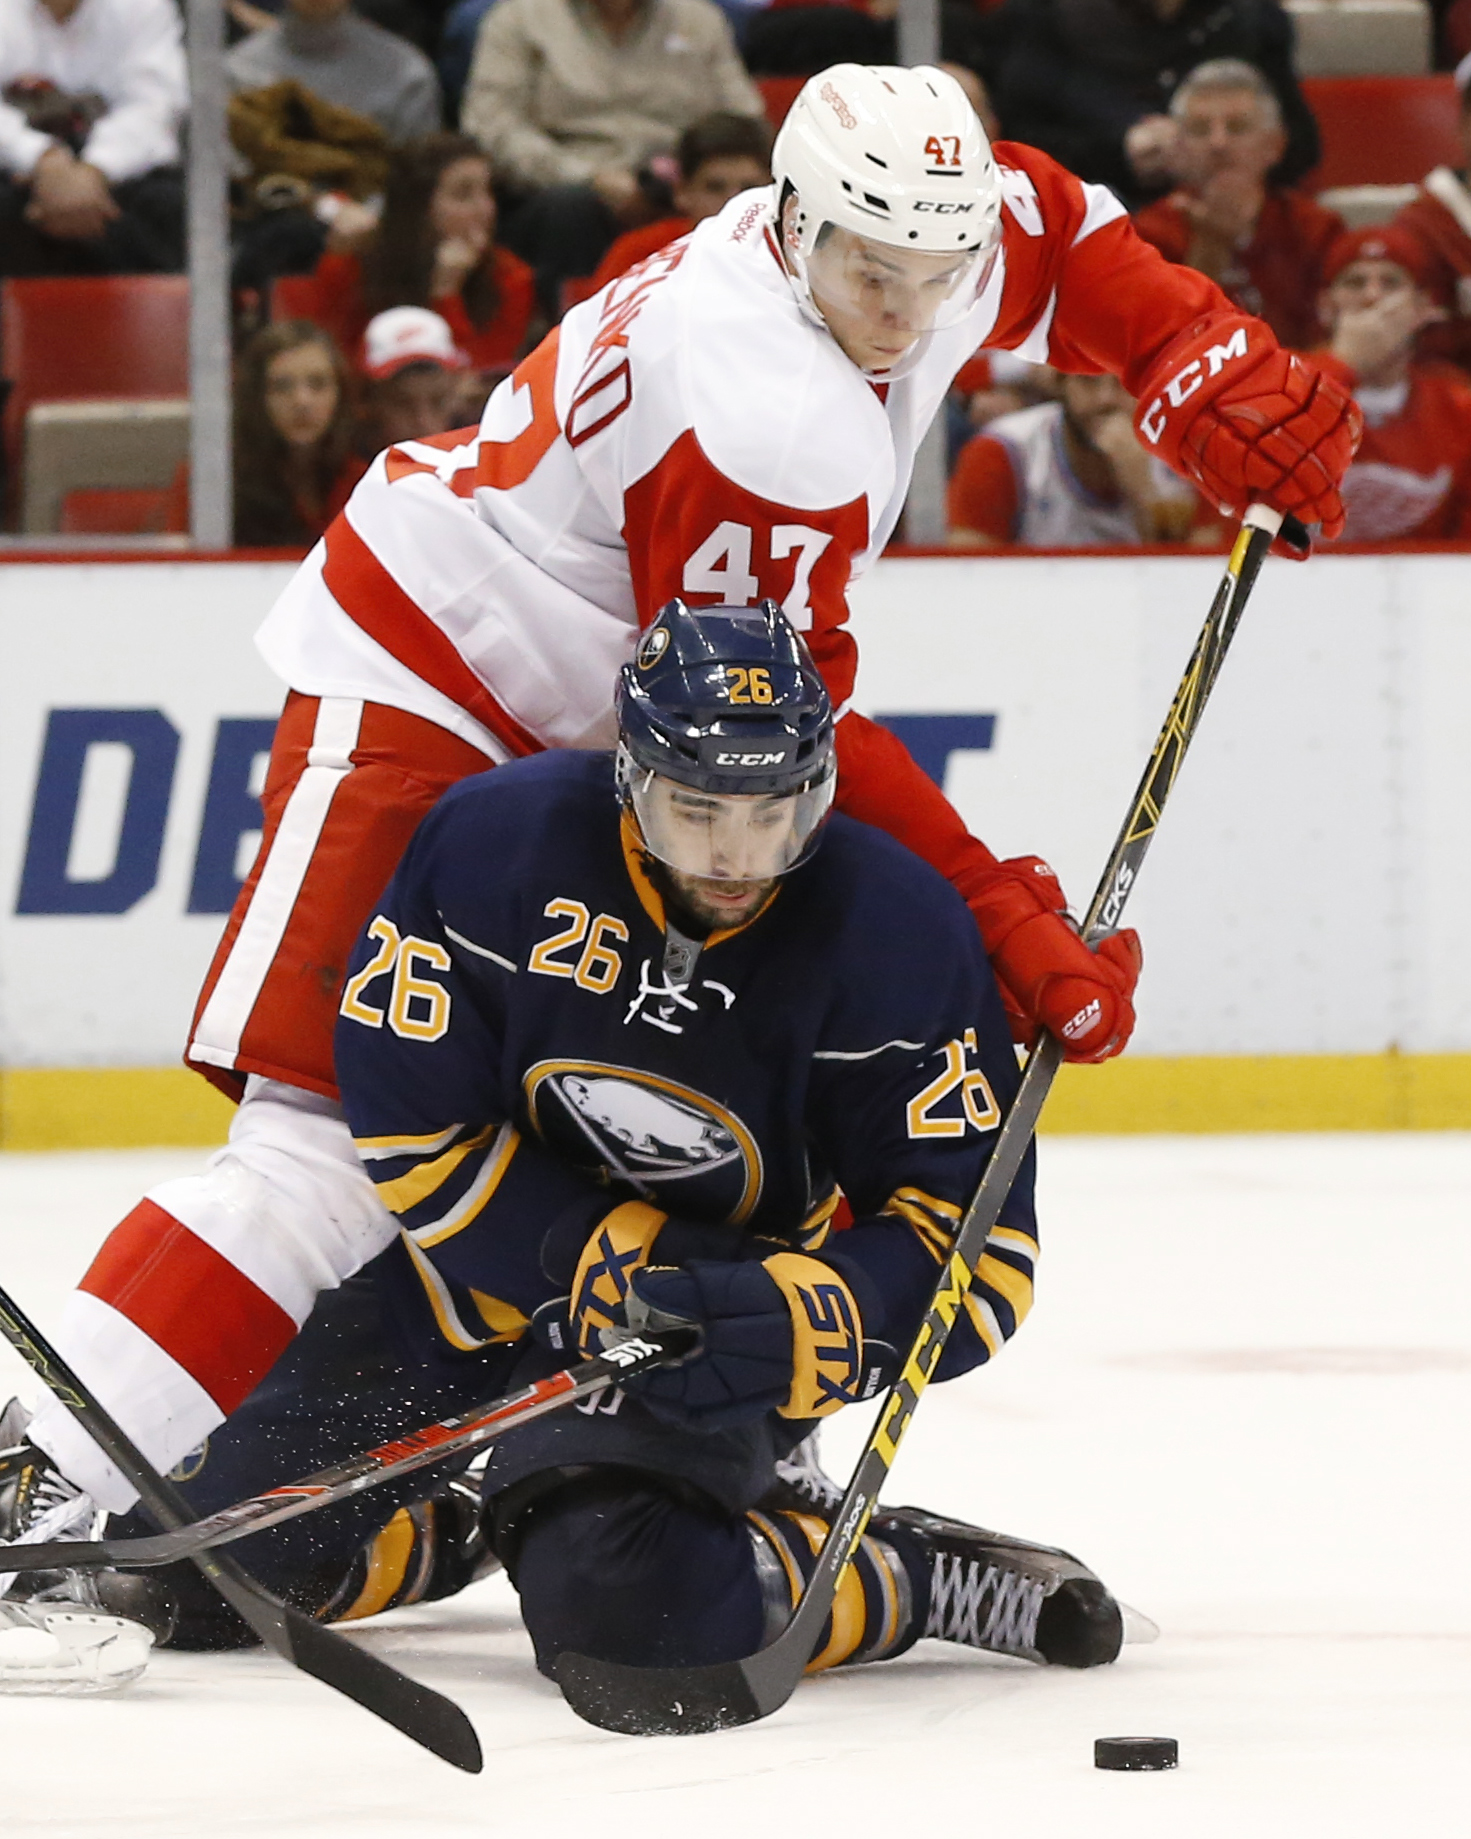 Buffalo Sabres left wing Matt Moulson (26) tries to shoot as Detroit Red Wings defenseman Alexei Marchenko (47) defends in the third period of an NHL hockey game Monday, Dec. 14, 2015 in Detroit. (AP Photo/Paul Sancya)